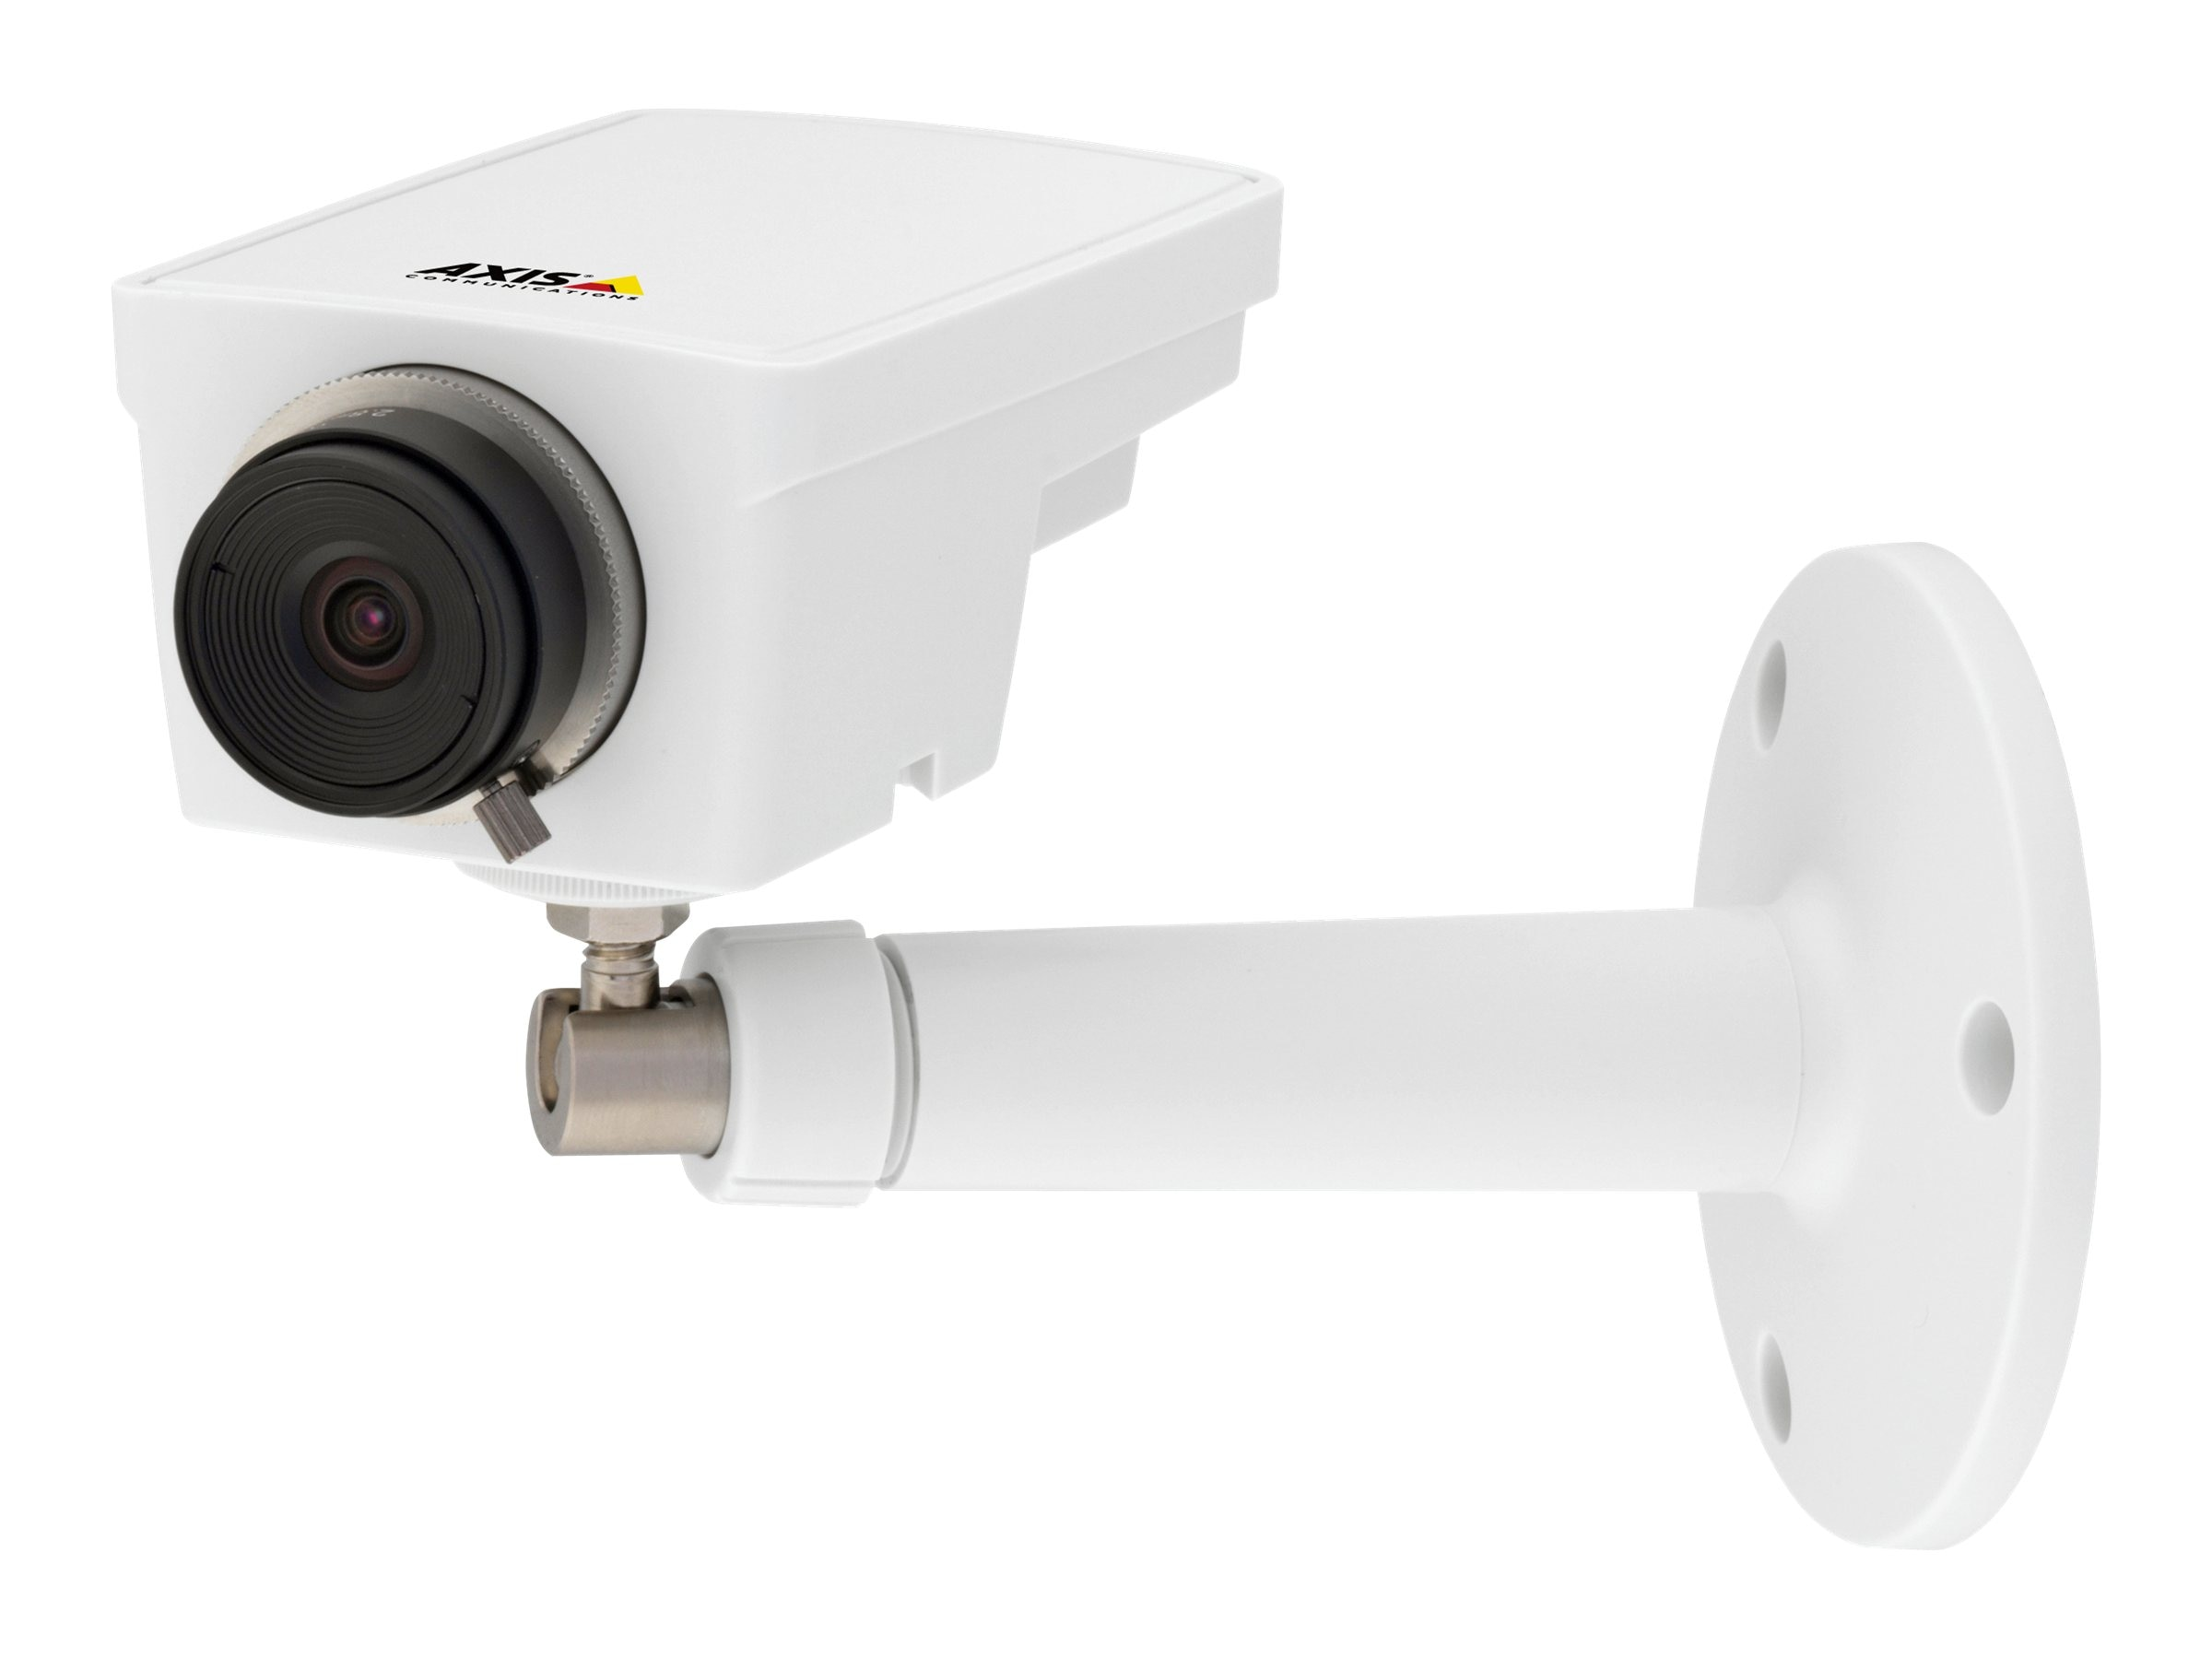 Axis M1104 Network Camera with 2.8mm Lens, 0339-001, 11396979, Cameras - Security